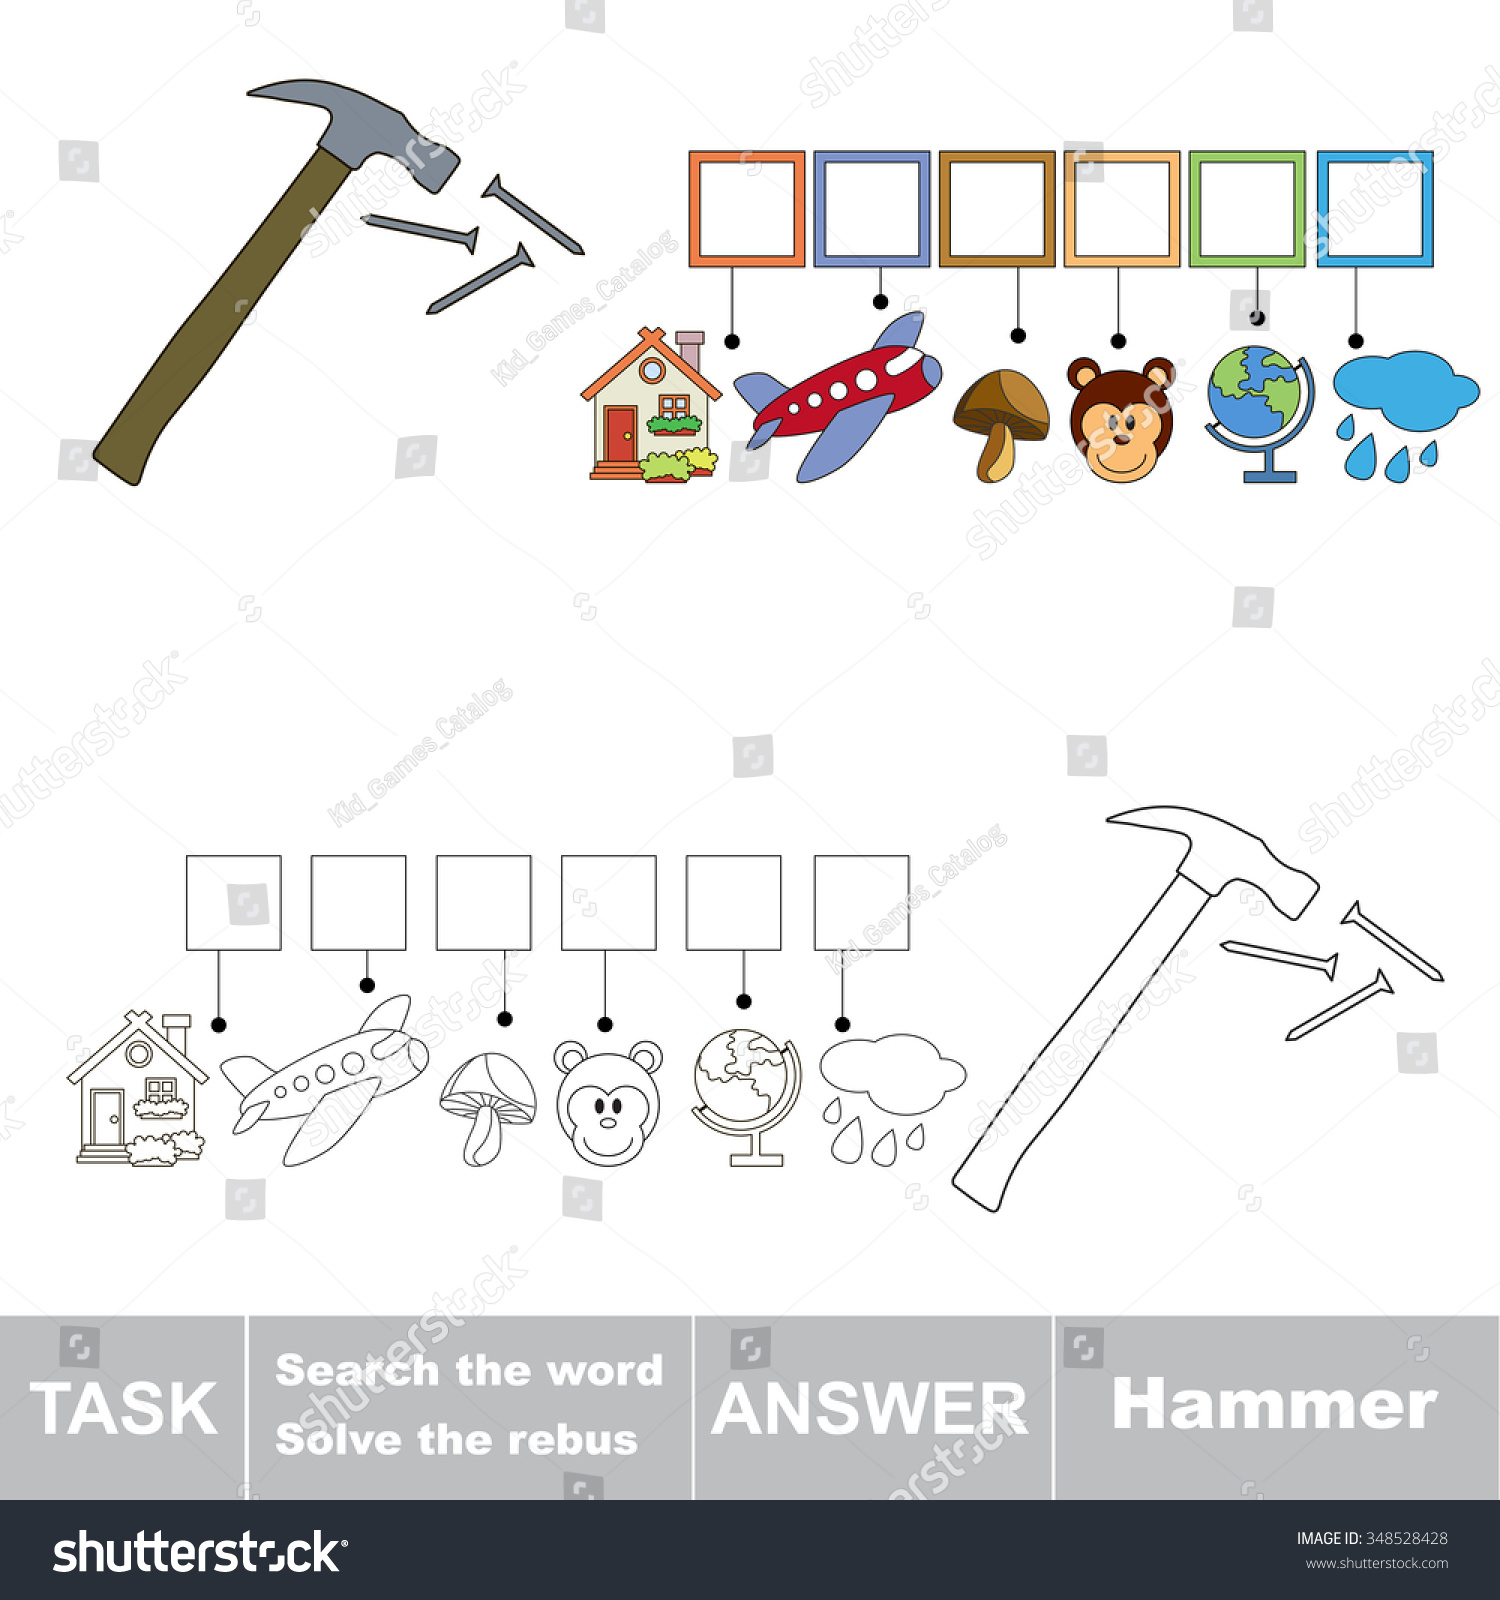 vector rebus game task and answer solve the rebus and find the word hammer 348528428. Black Bedroom Furniture Sets. Home Design Ideas